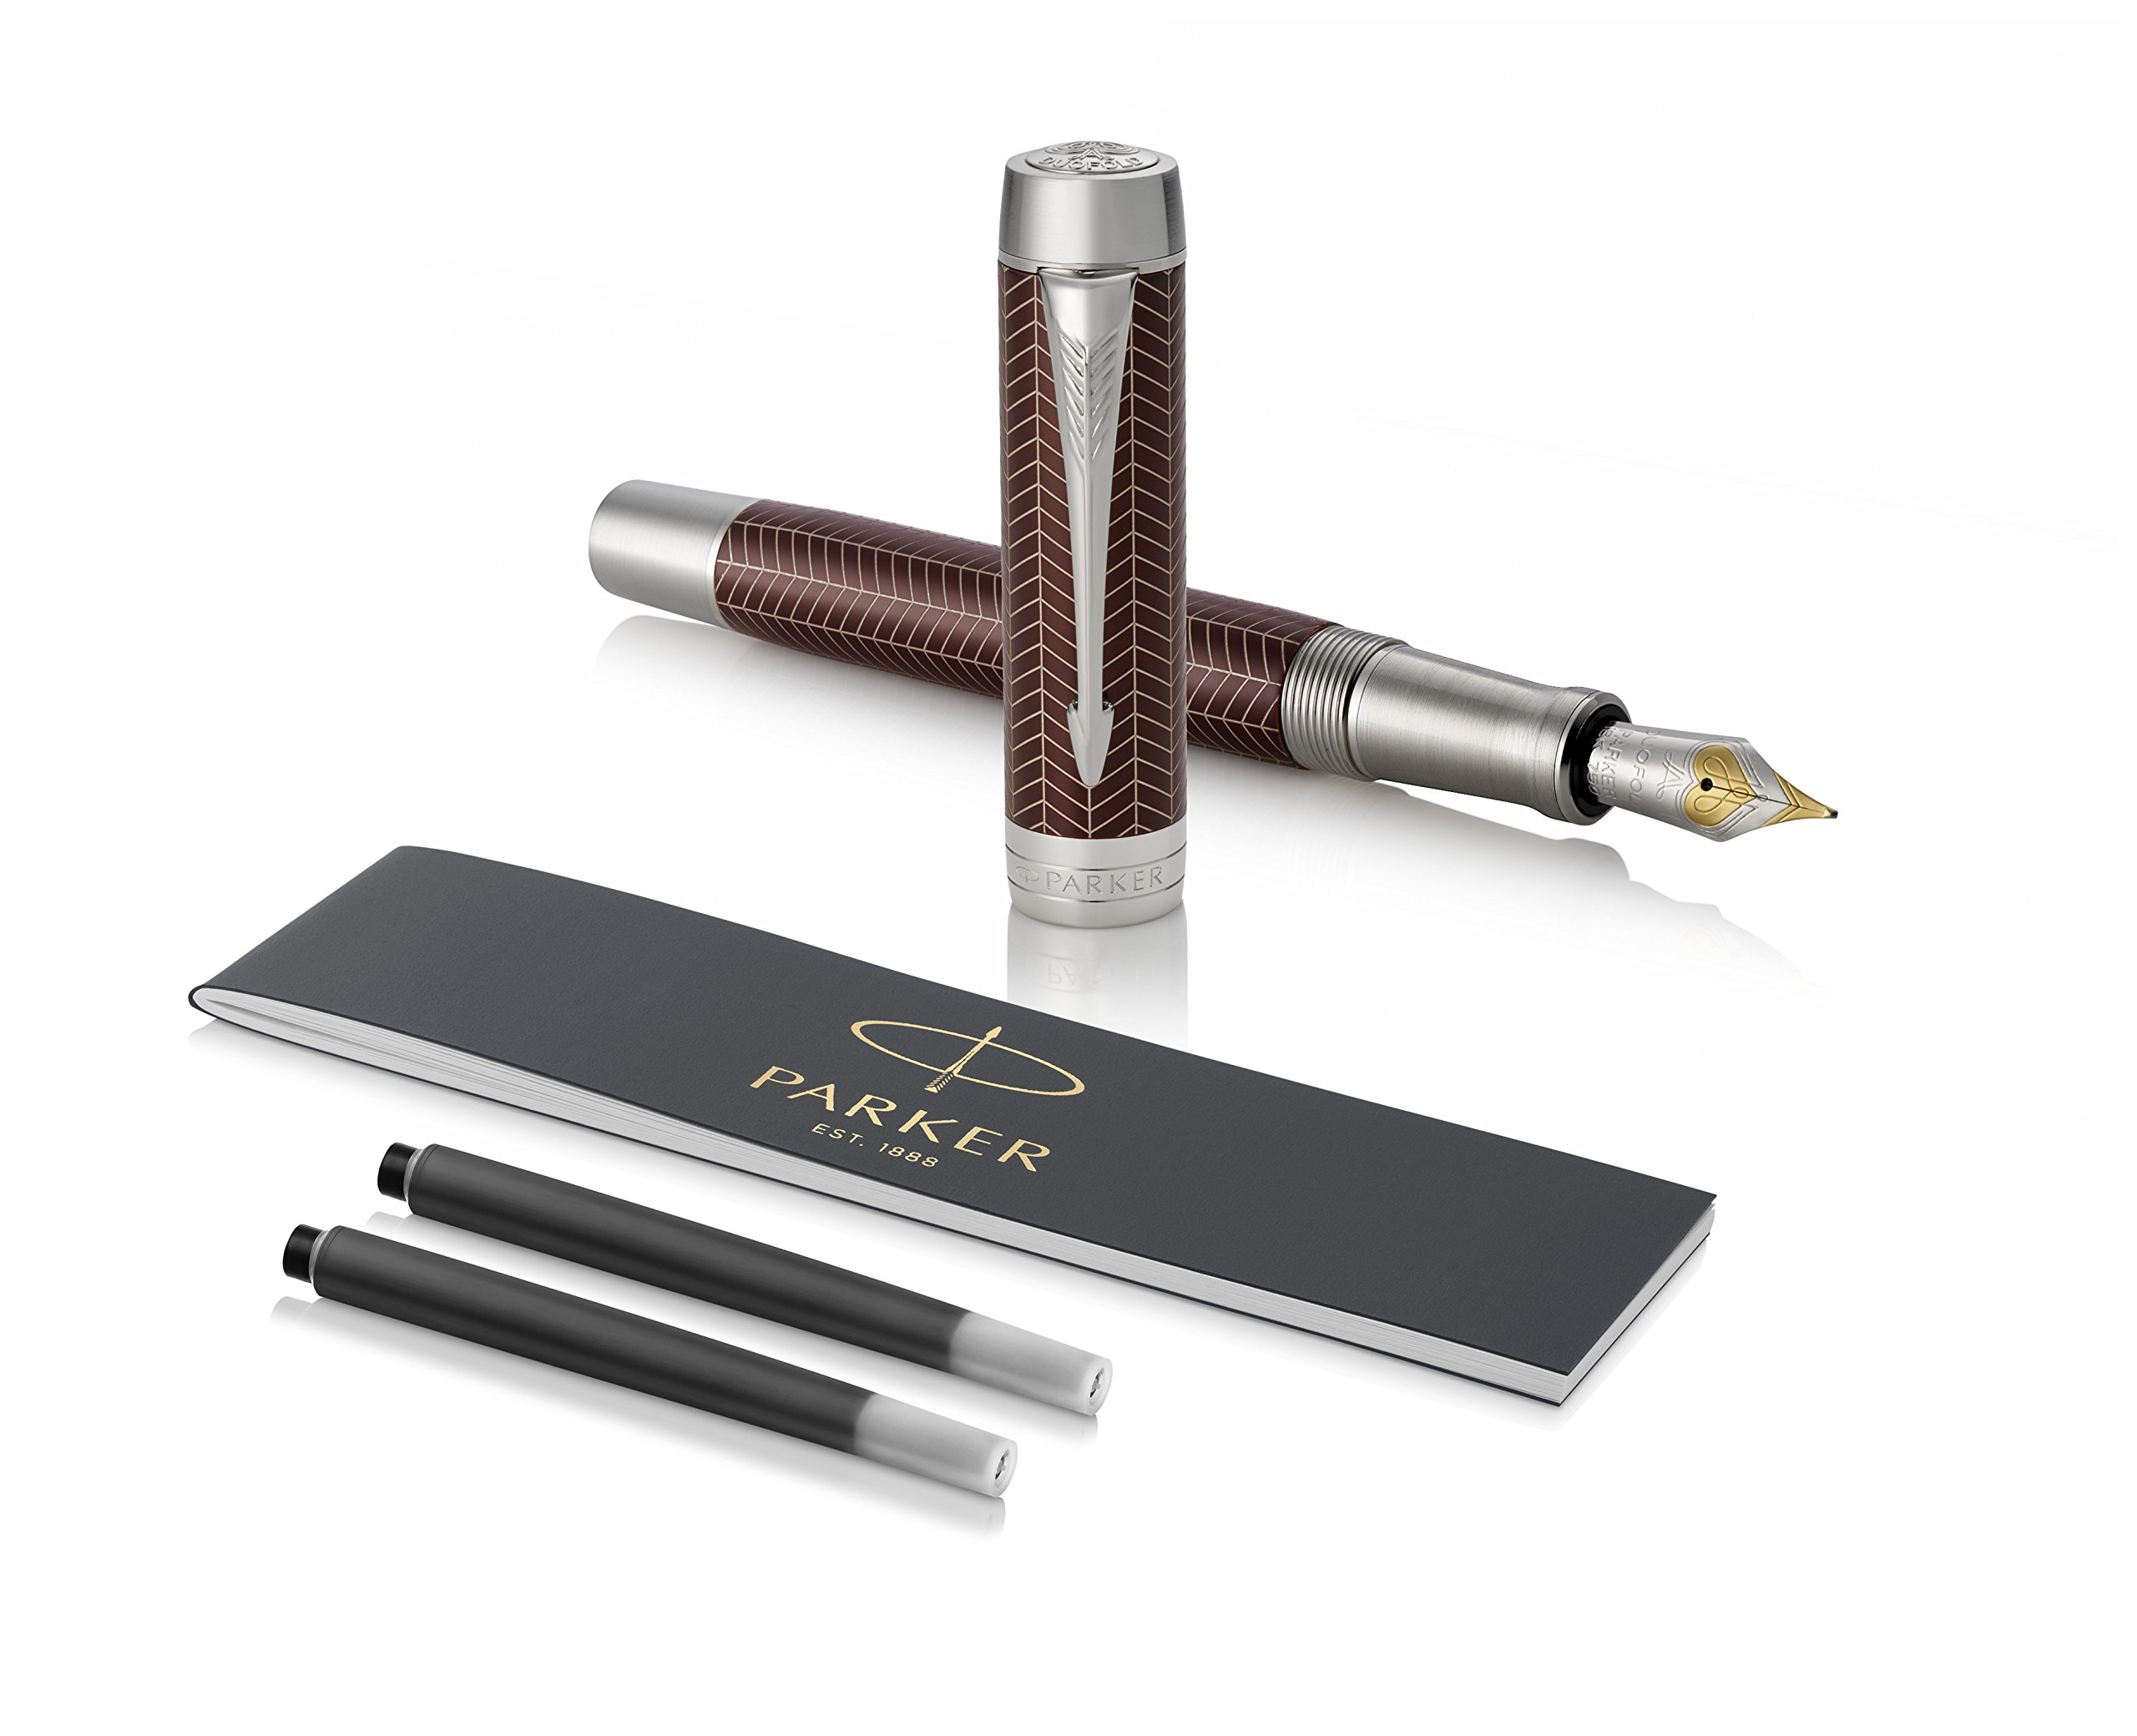 PARKER Duofold Centennial Fountain Pen, Prestige Burgundy Chevron, Medium Solid Gold Nib, Black Ink and Convertor (1945417) by Parker (Image #1)